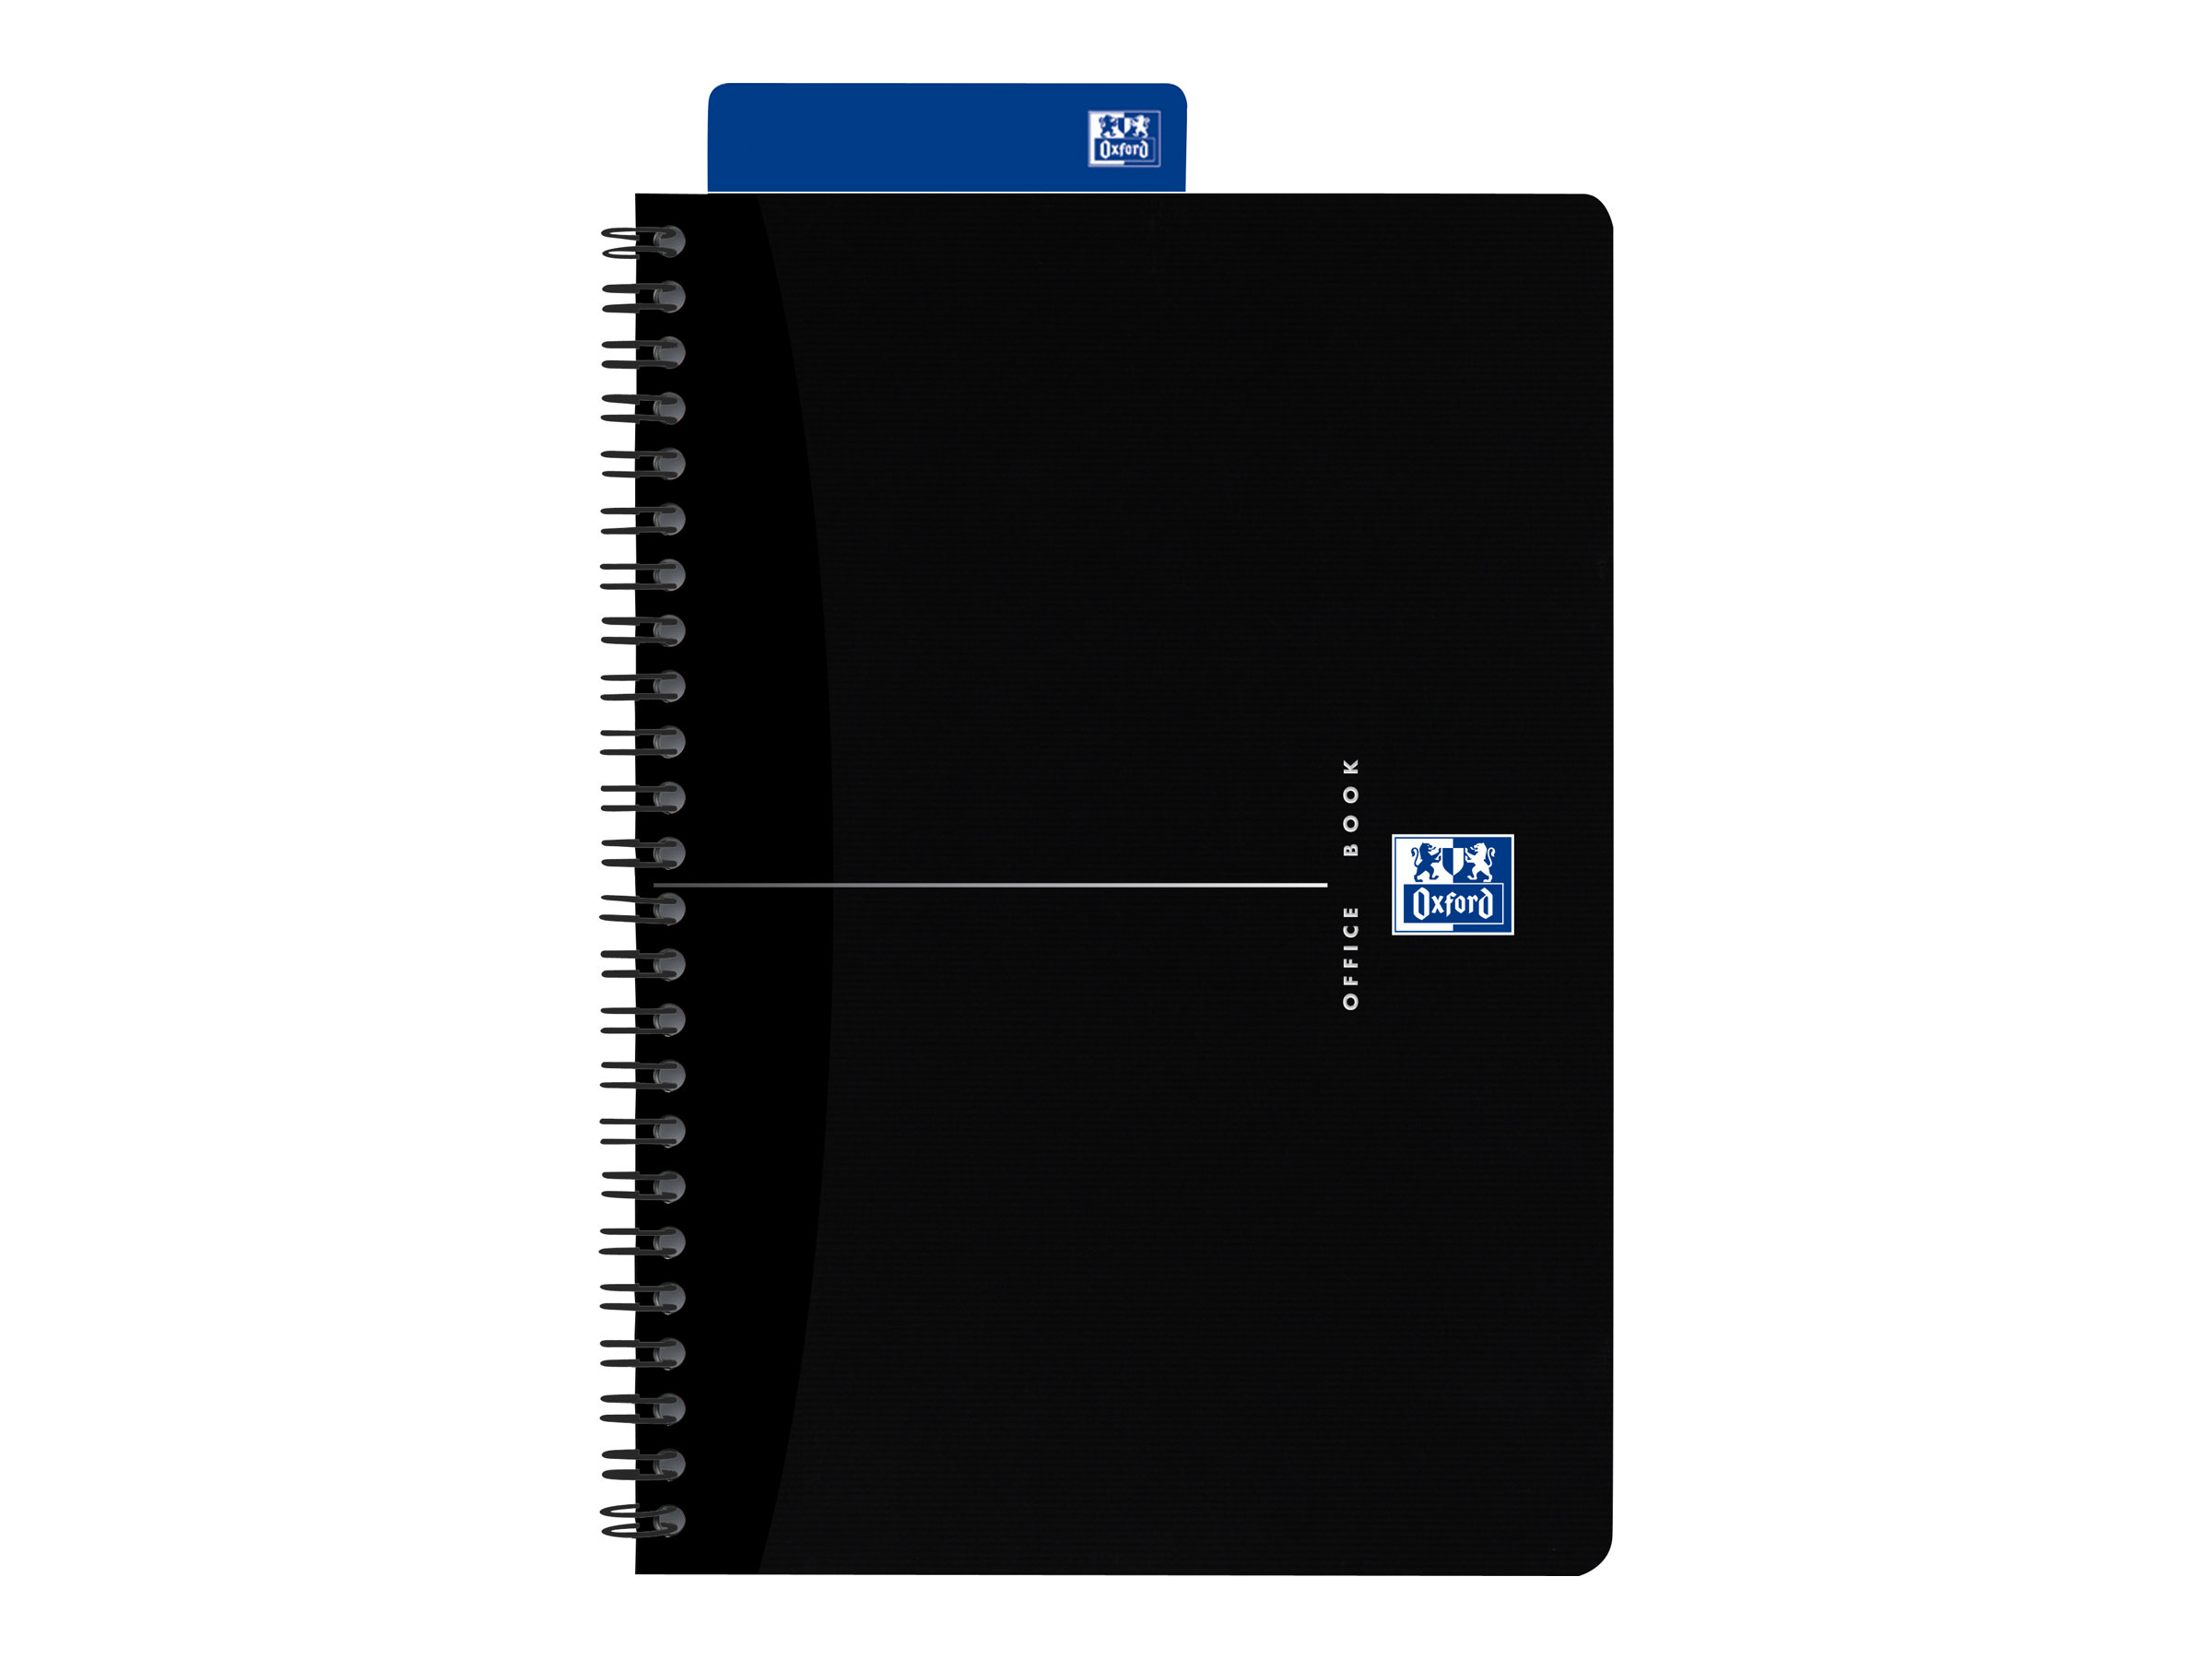 Oxford Office Smart Black - Cahier - A5 - 180 pages - Petits carreaux - couverture noire